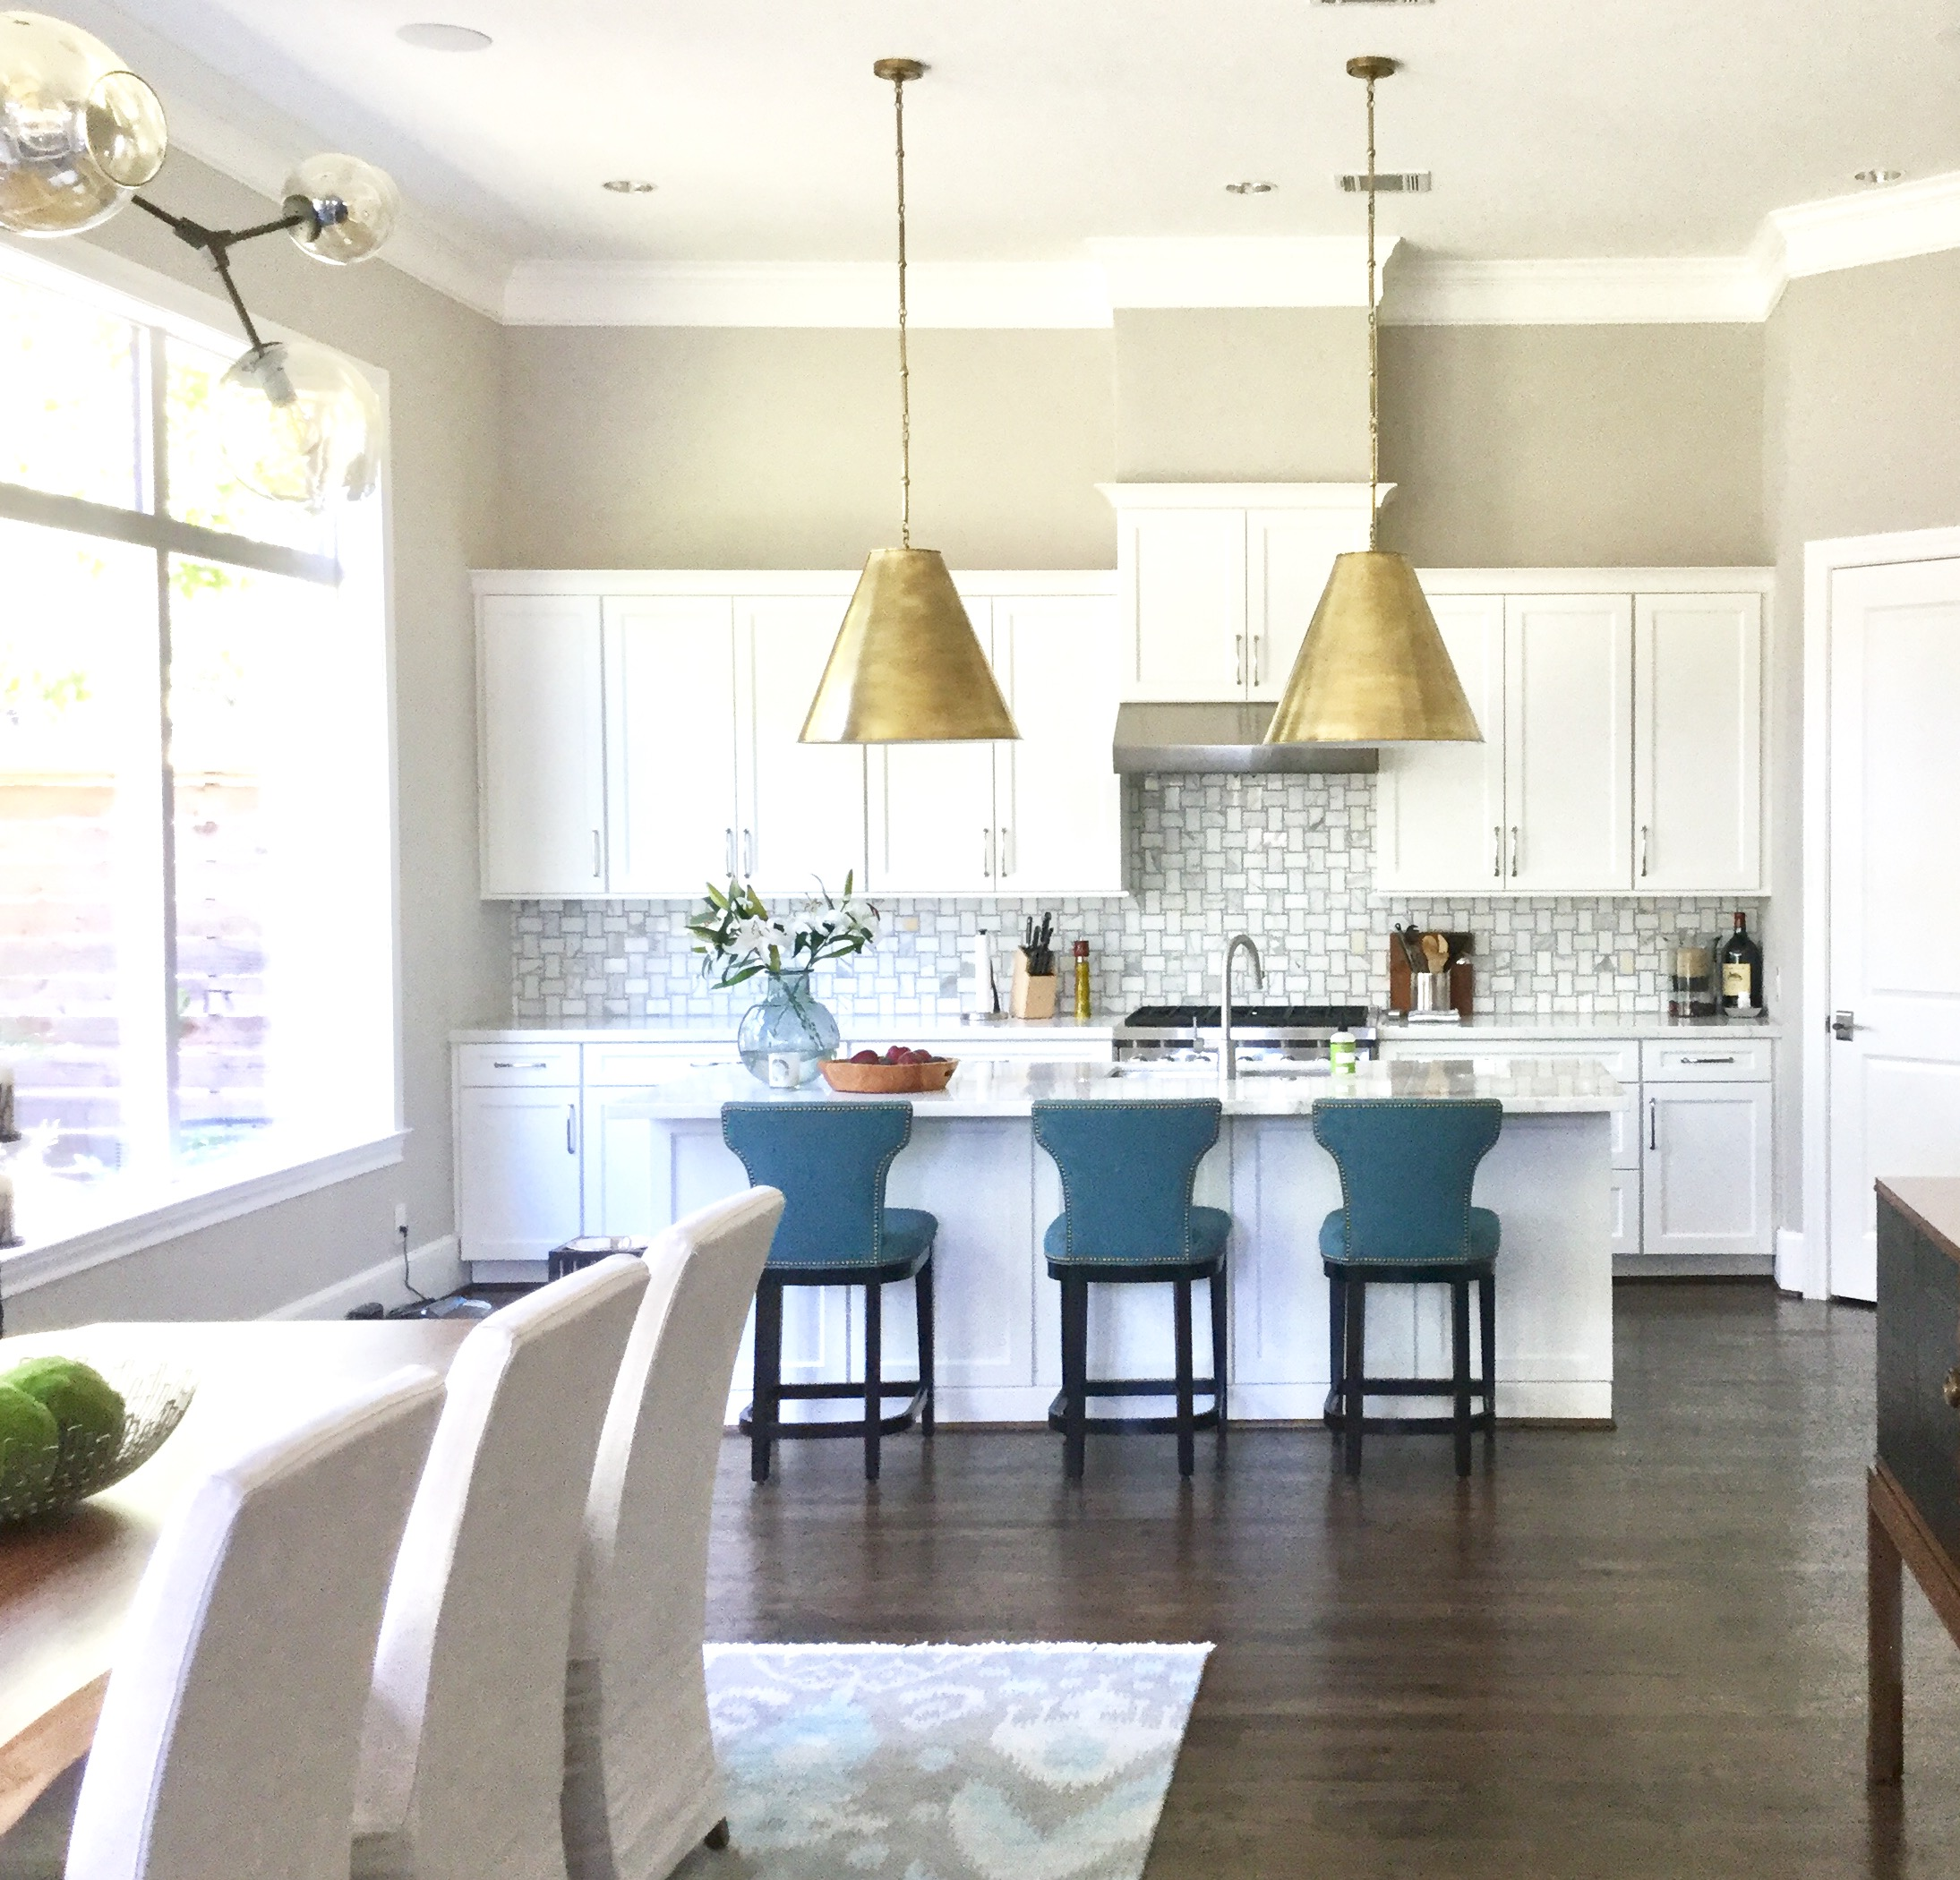 7 Considerations For Kitchen Island Pendant Lighting Selection — DESIGNED